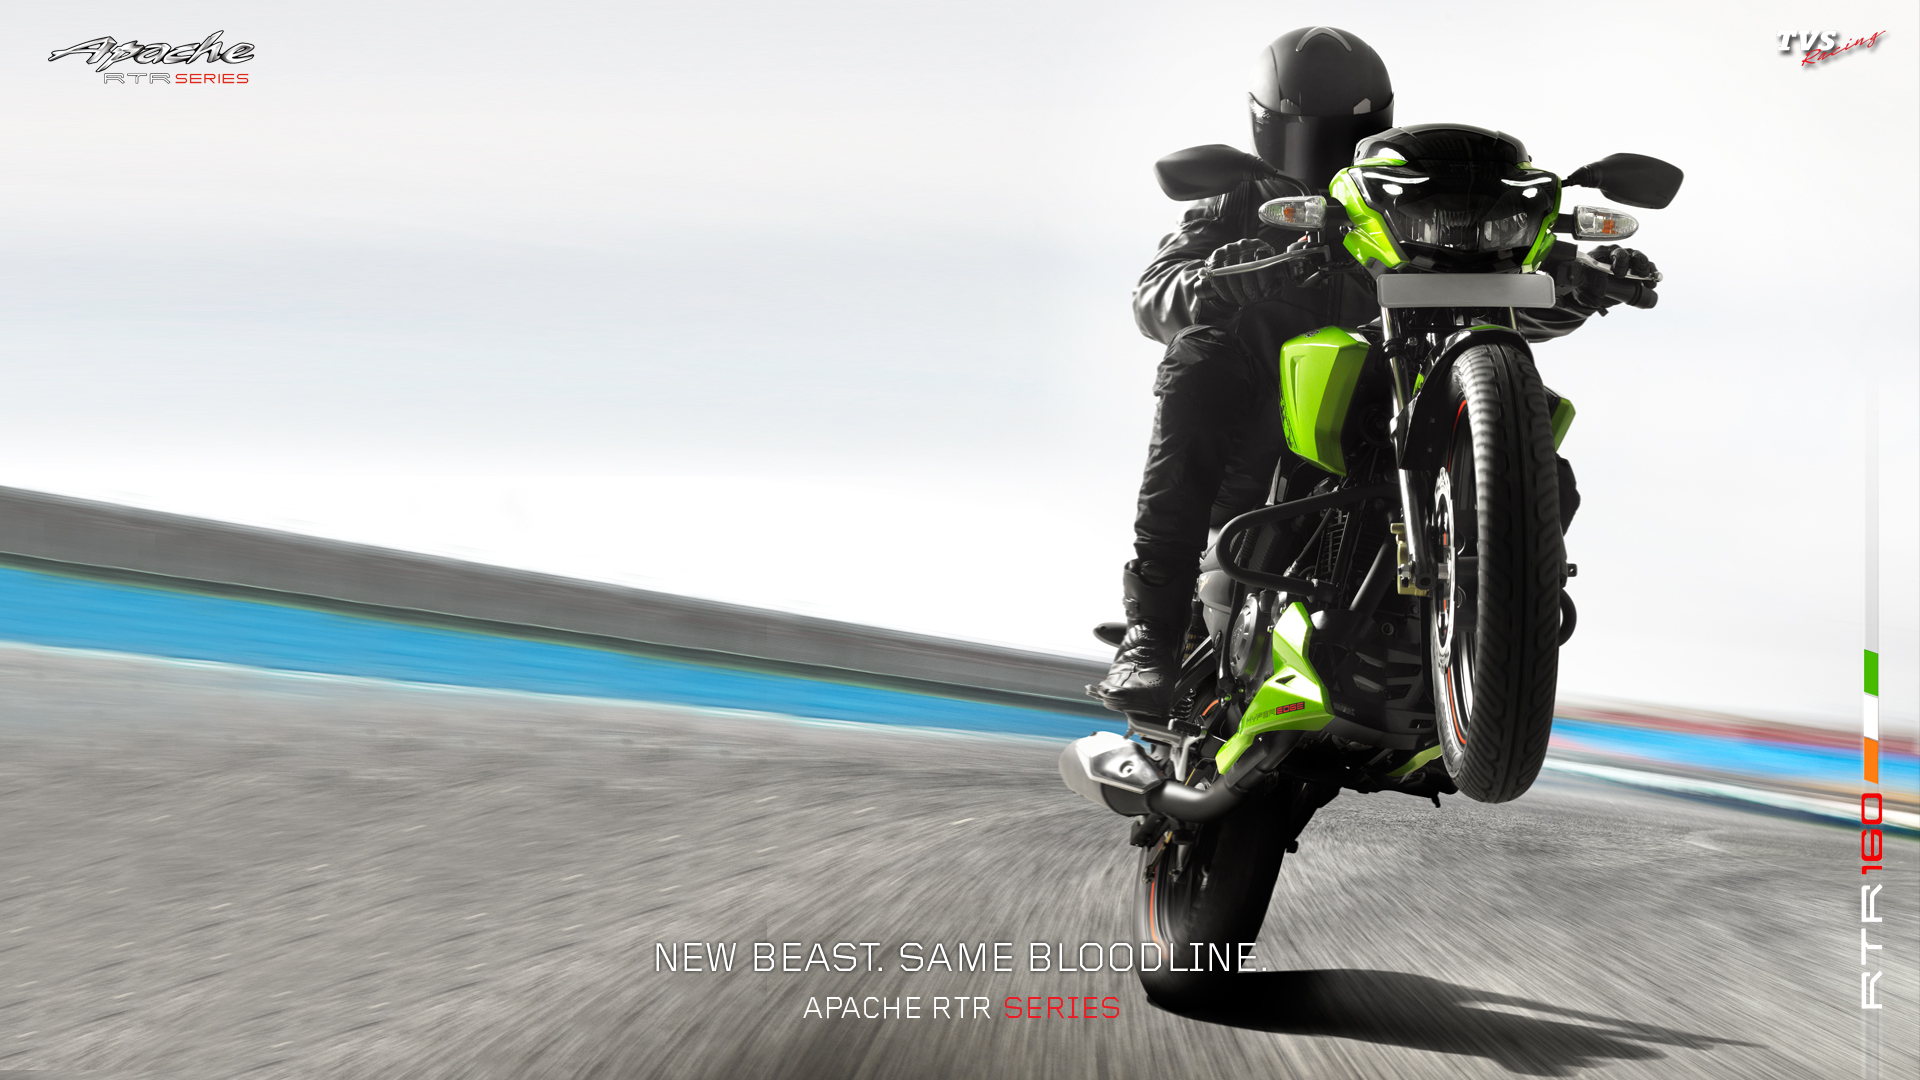 TVS Apache RTR 160   Showing tvs apache rtr 160 widescreen 1920x1080